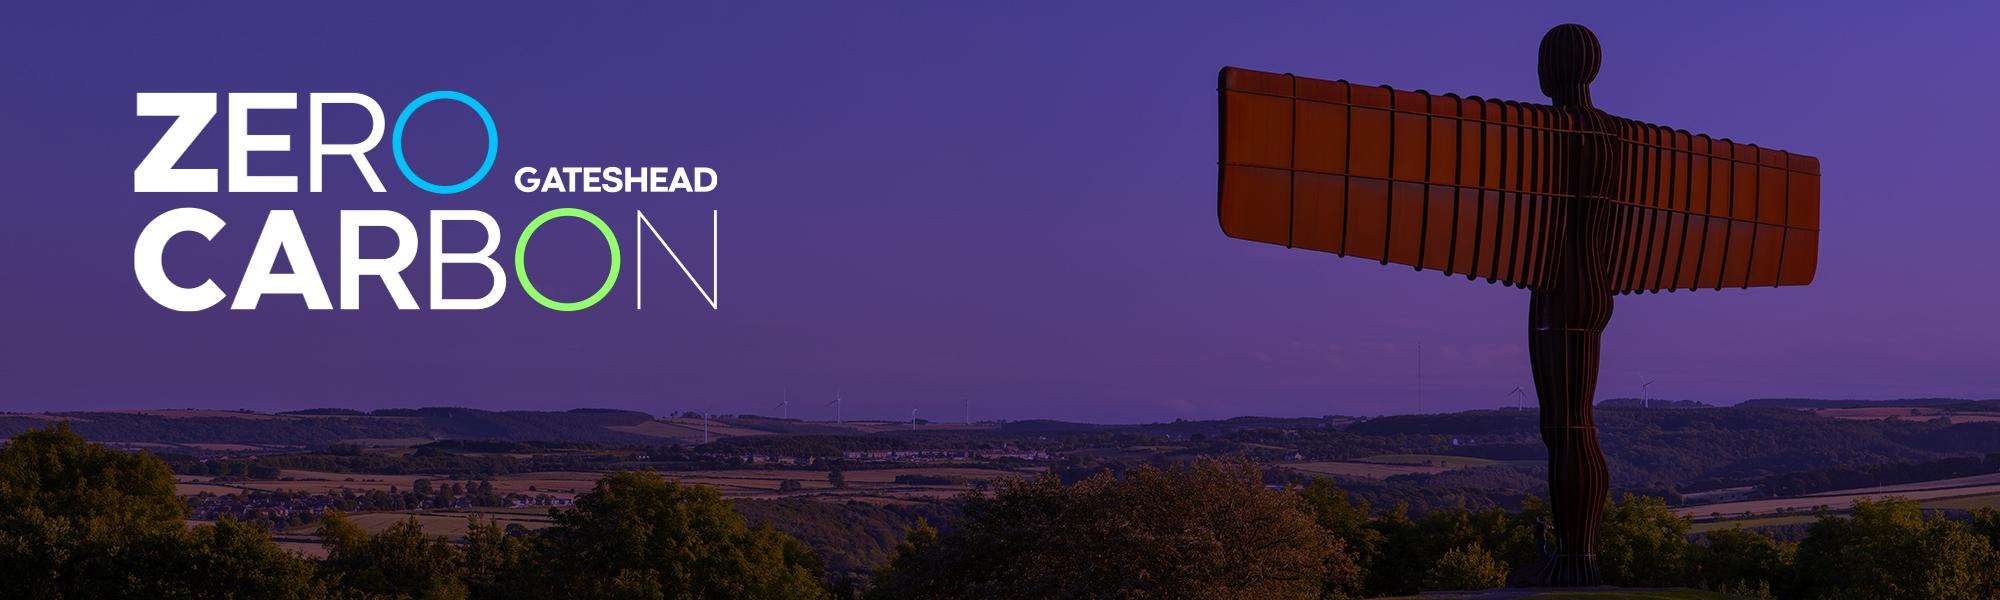 Zero Carbon Gateshead over an image of the Angel of the North with Gateshead in the background